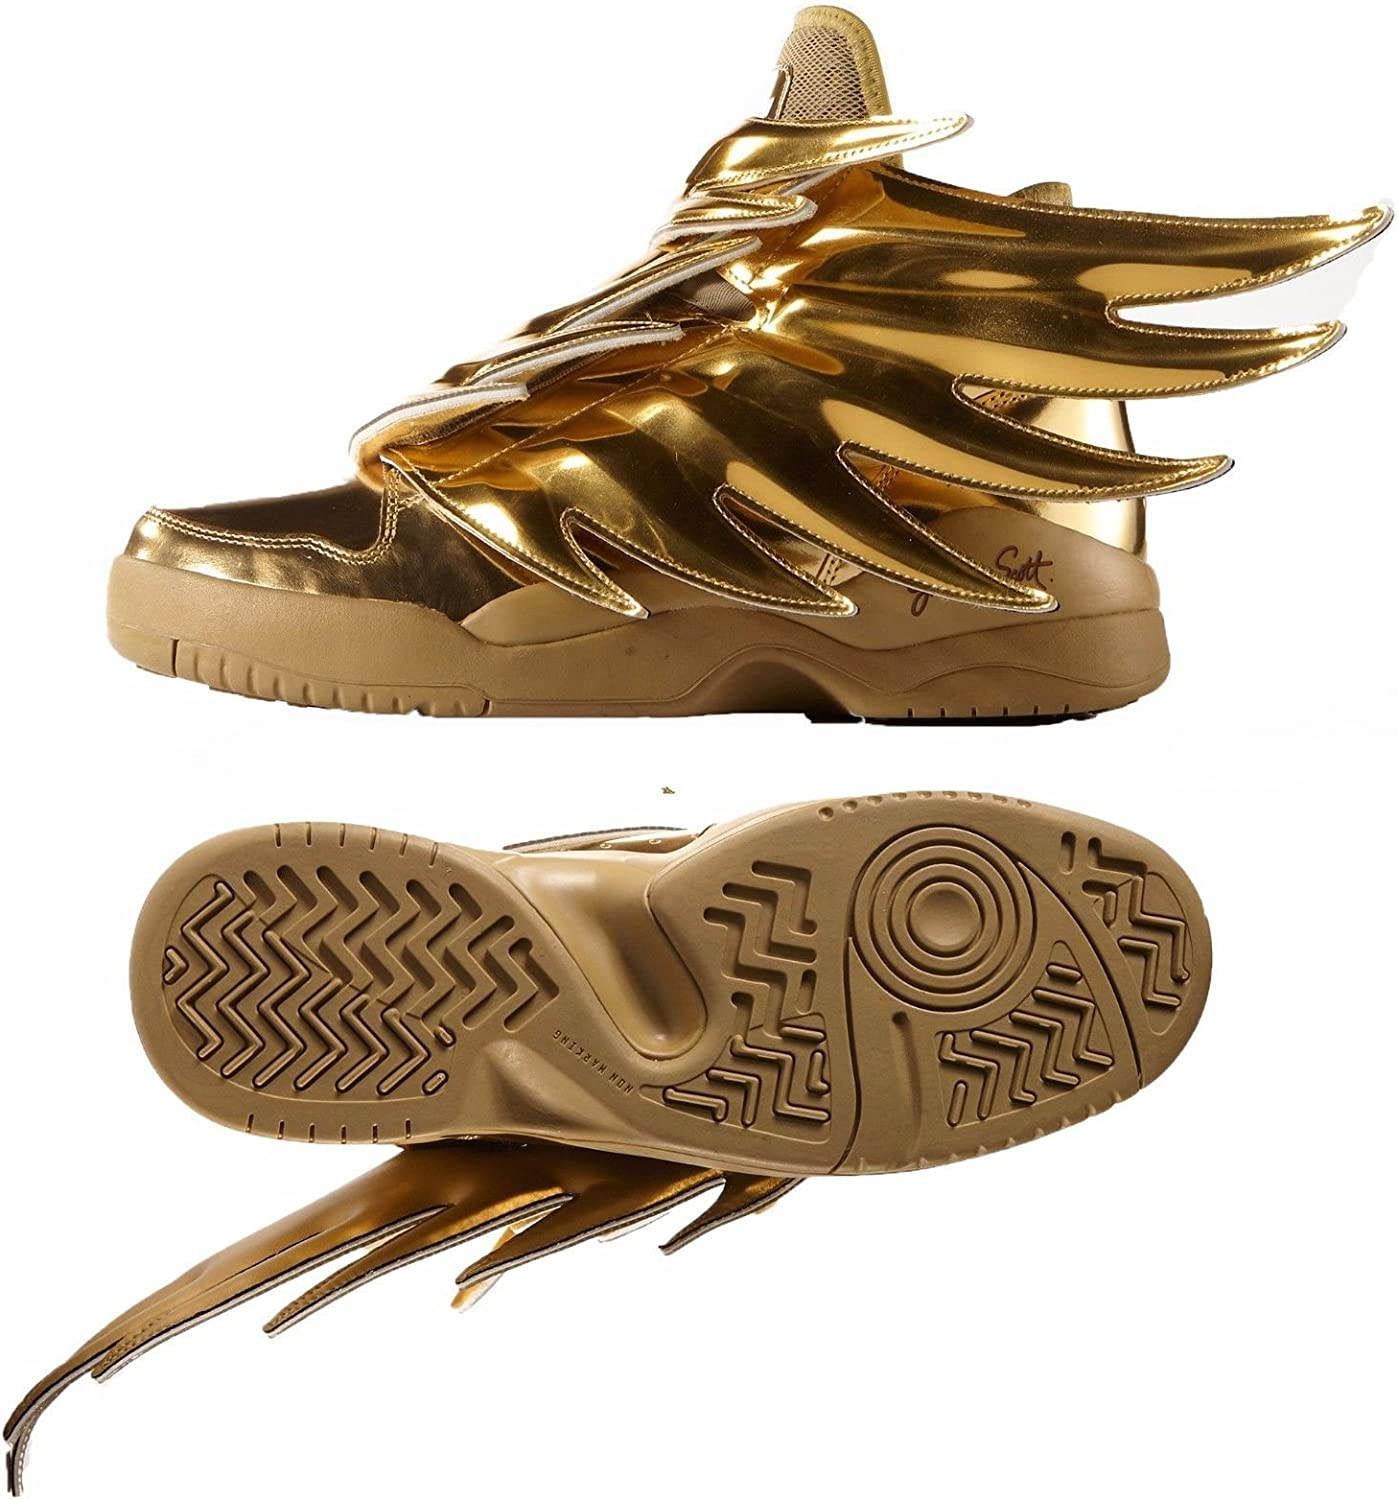 Adidas Obyo Js Jeremy Scott Wings 3 0 B35651 Gold Spiky Dark Knight Batman Shoes Size 4 Shoes